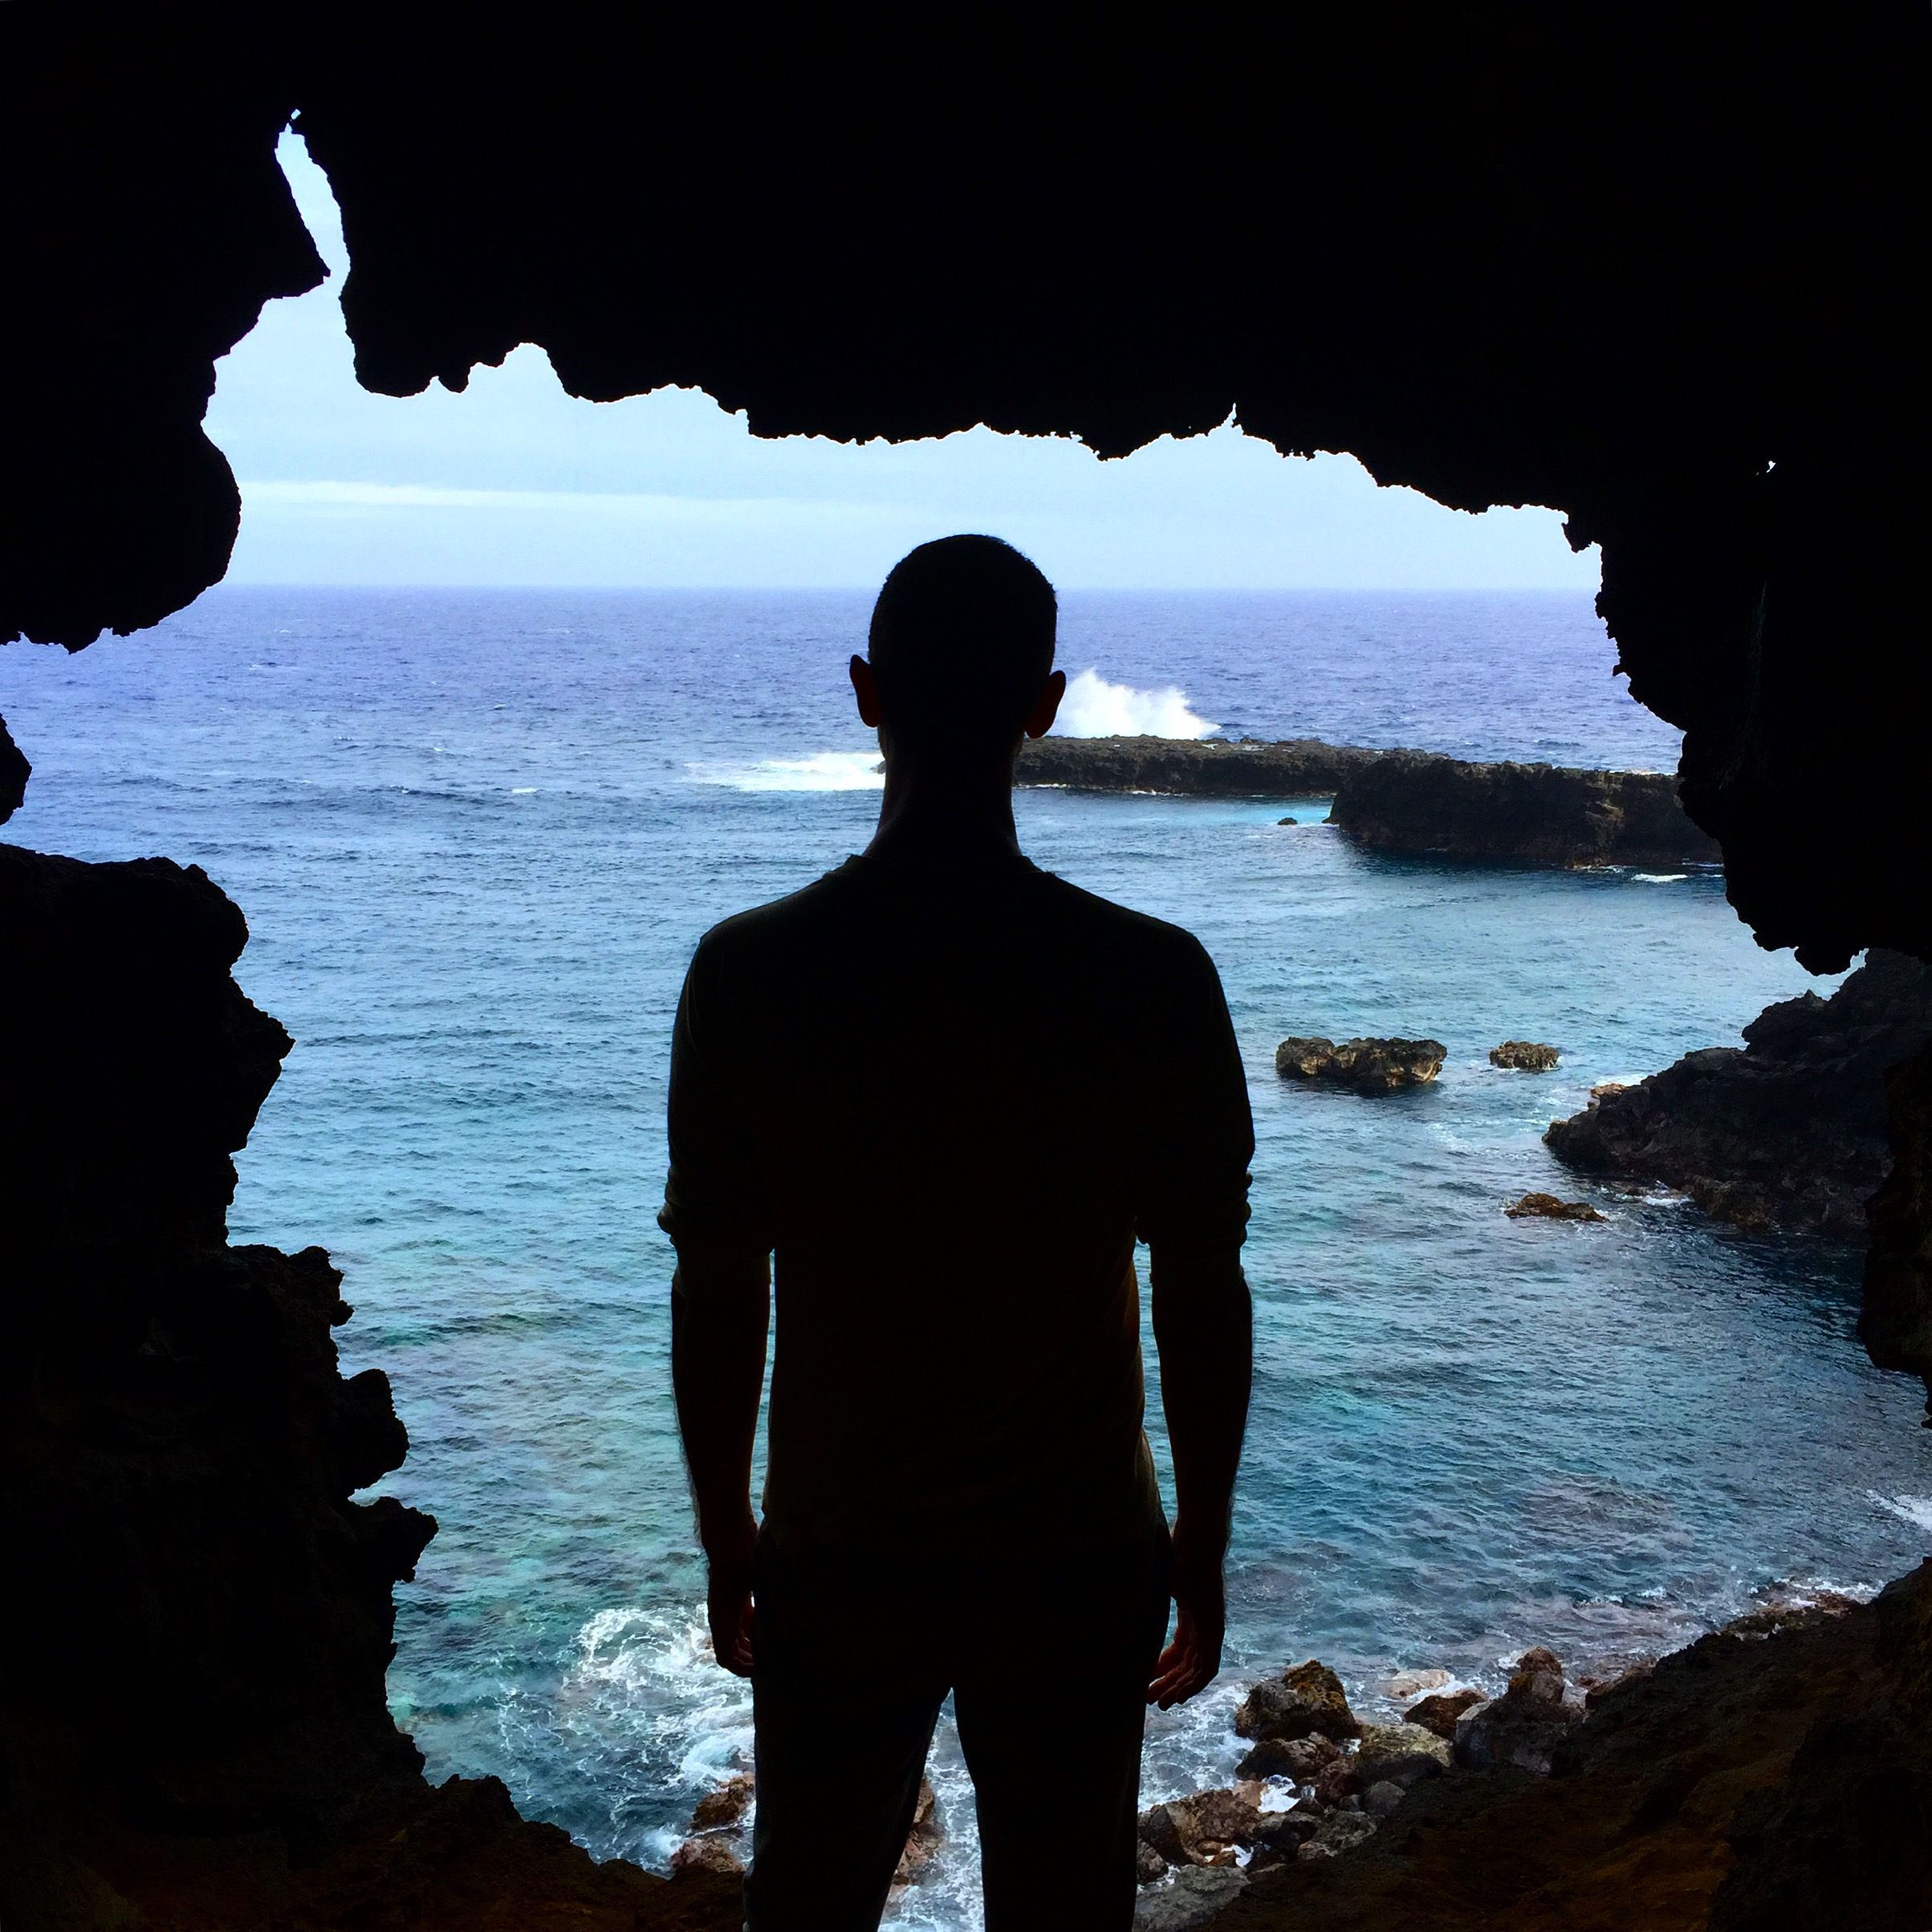 Hollow tubes where lava once flowed now create breathtaking views of the Pacific.